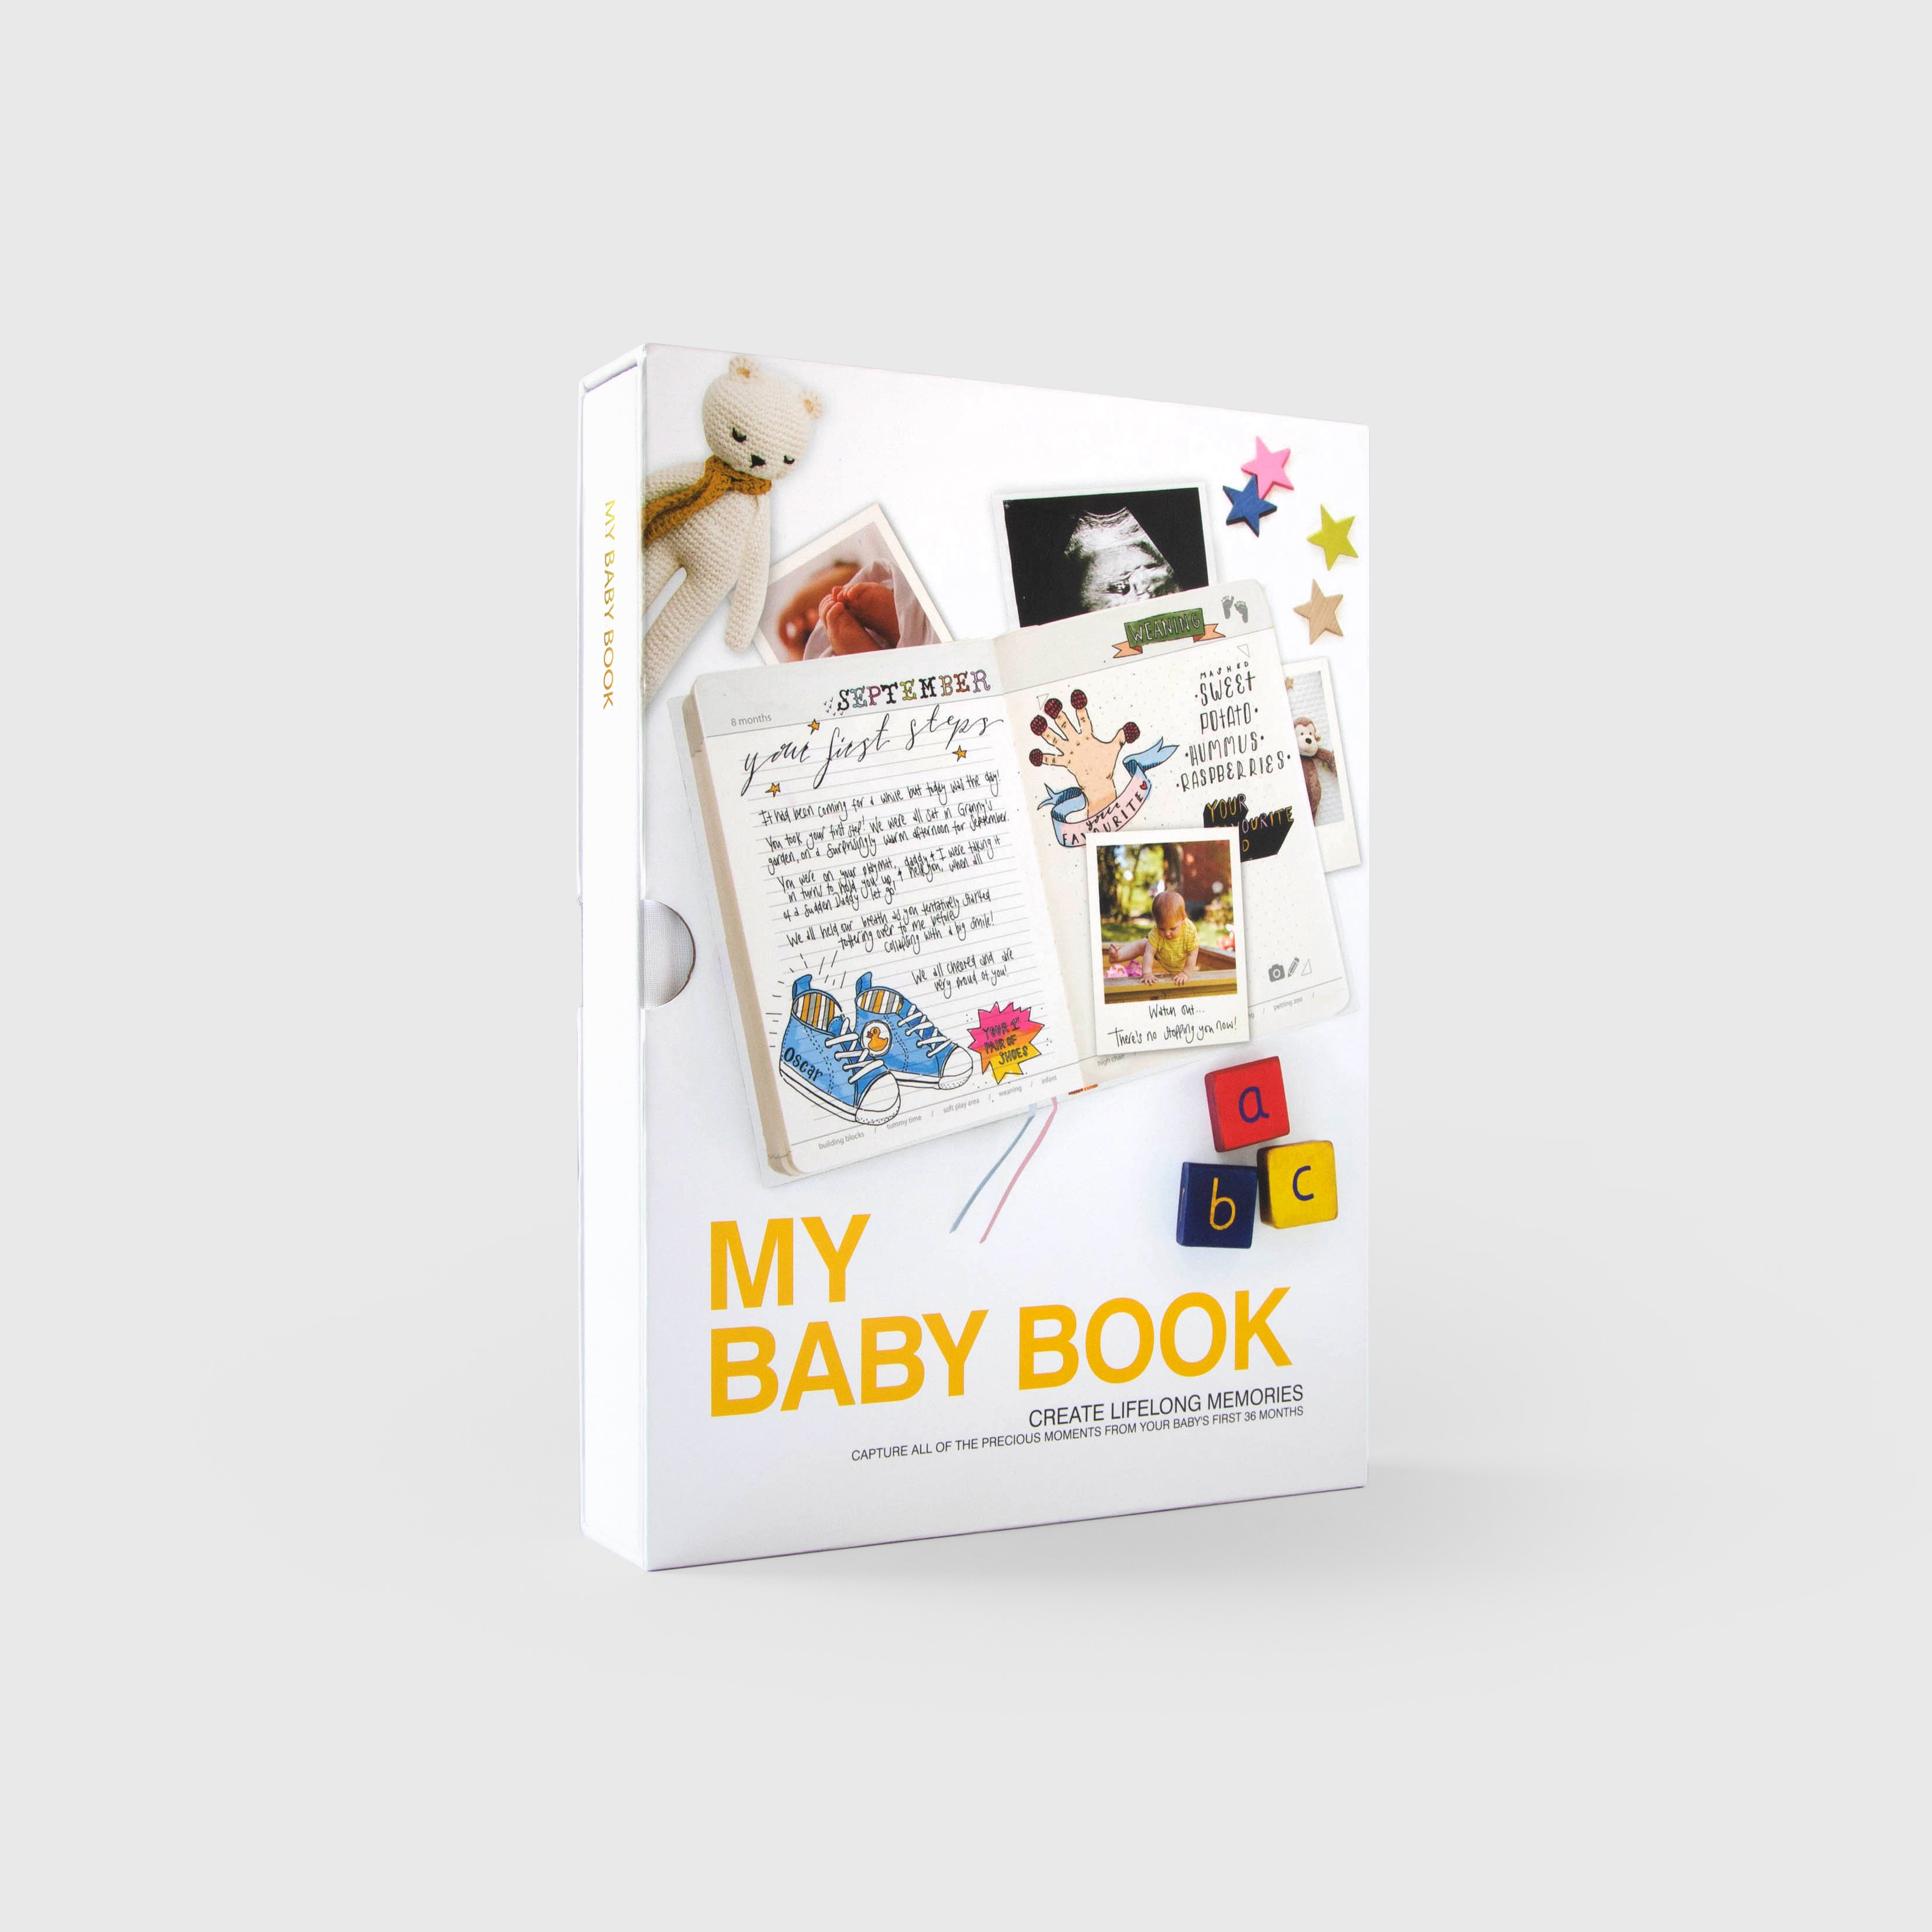 My Baby Book in packaging